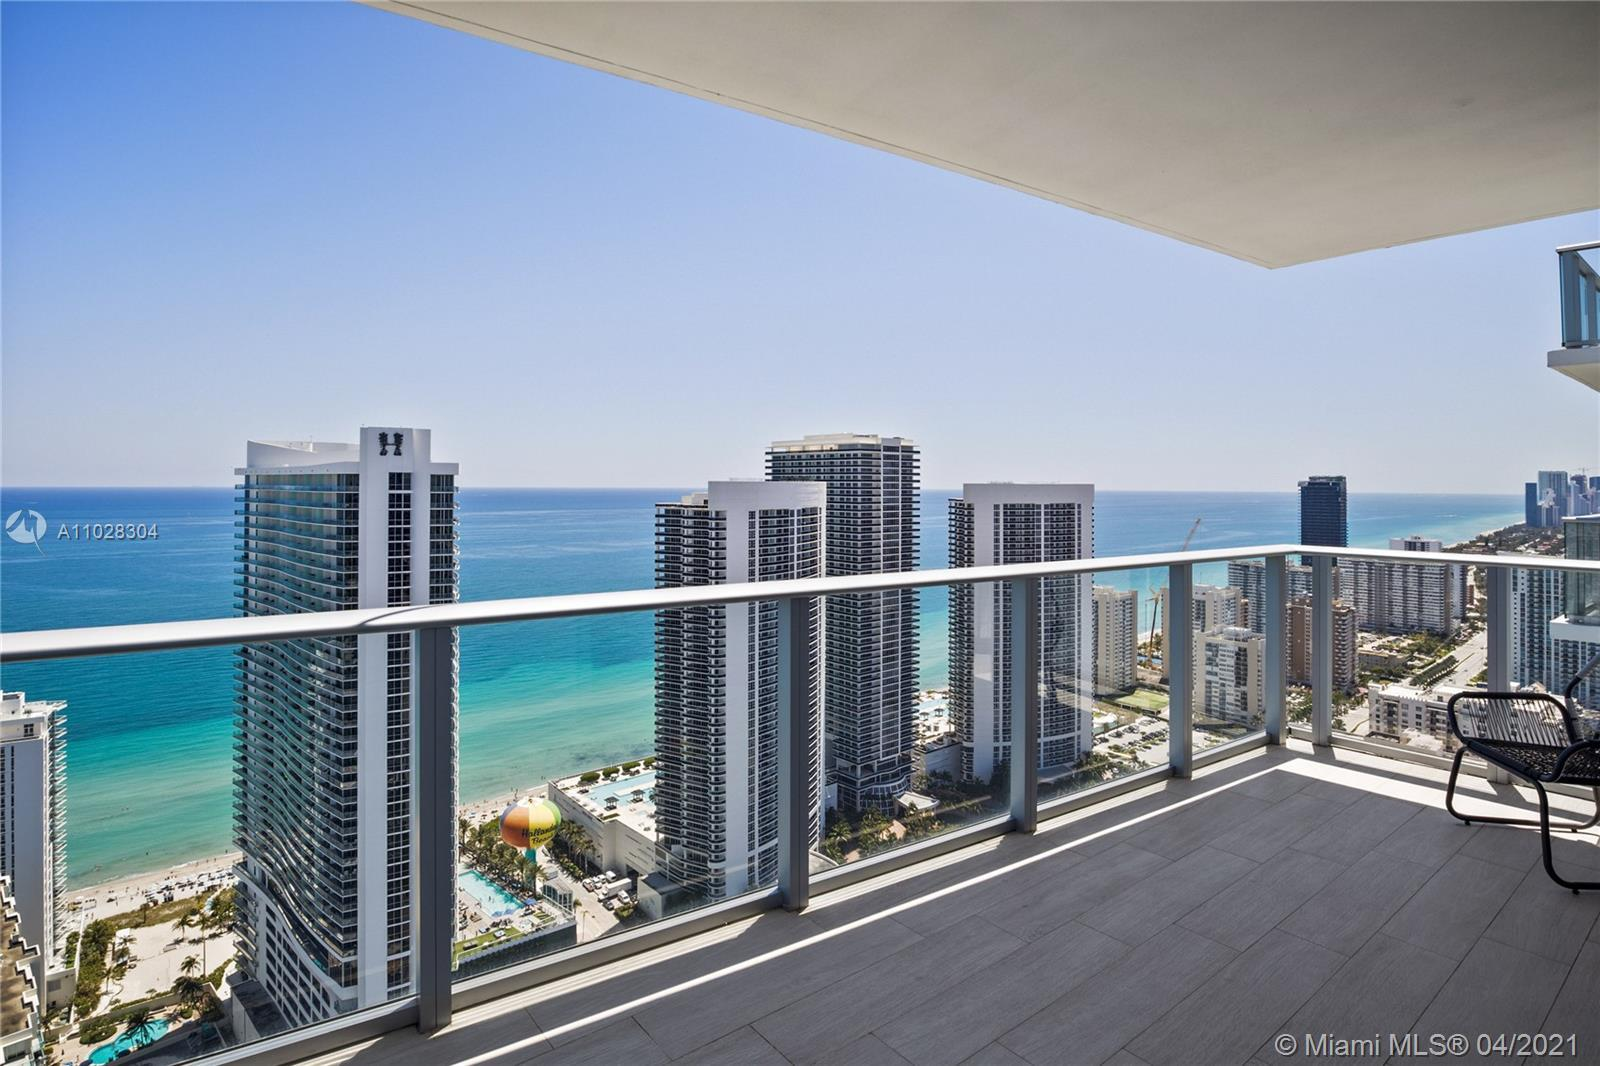 Impressive penthouse corner unit with stunning views of the